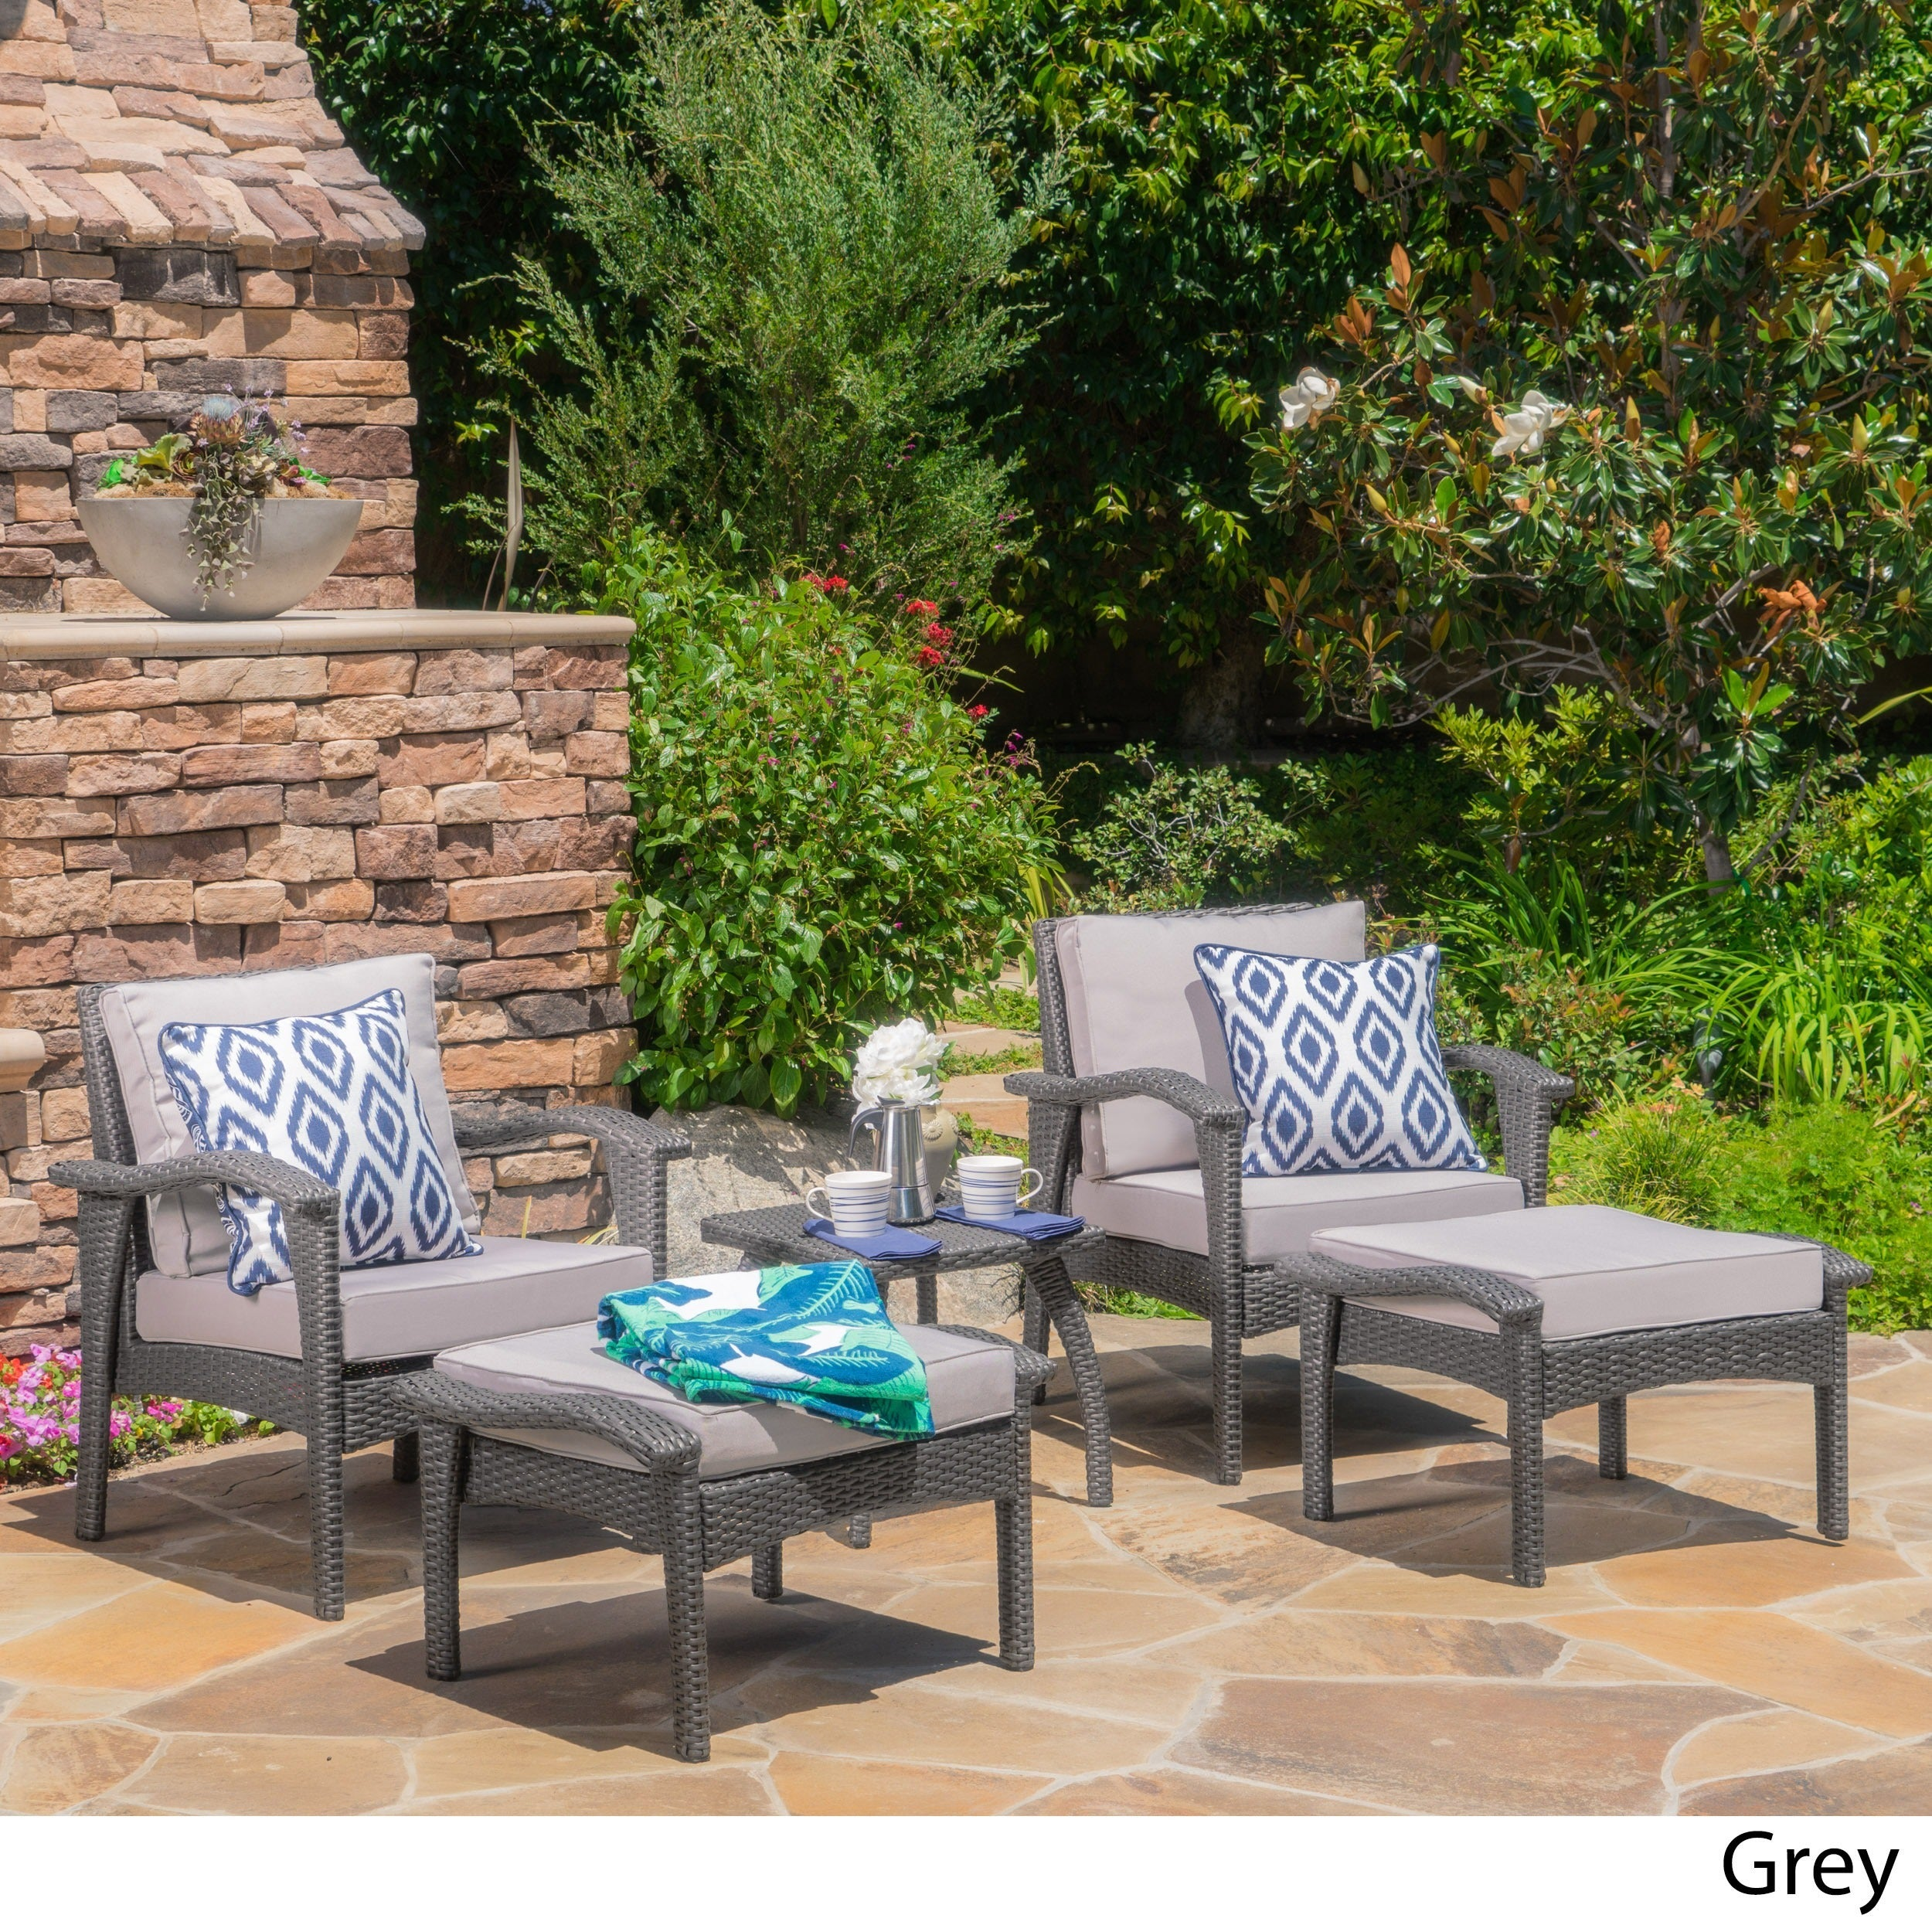 Shop Honolulu Outdoor 5 Piece Wicker Seating Set With Cushions By  Christopher Knight Home   On Sale   Free Shipping Today   Overstock.com    11199720